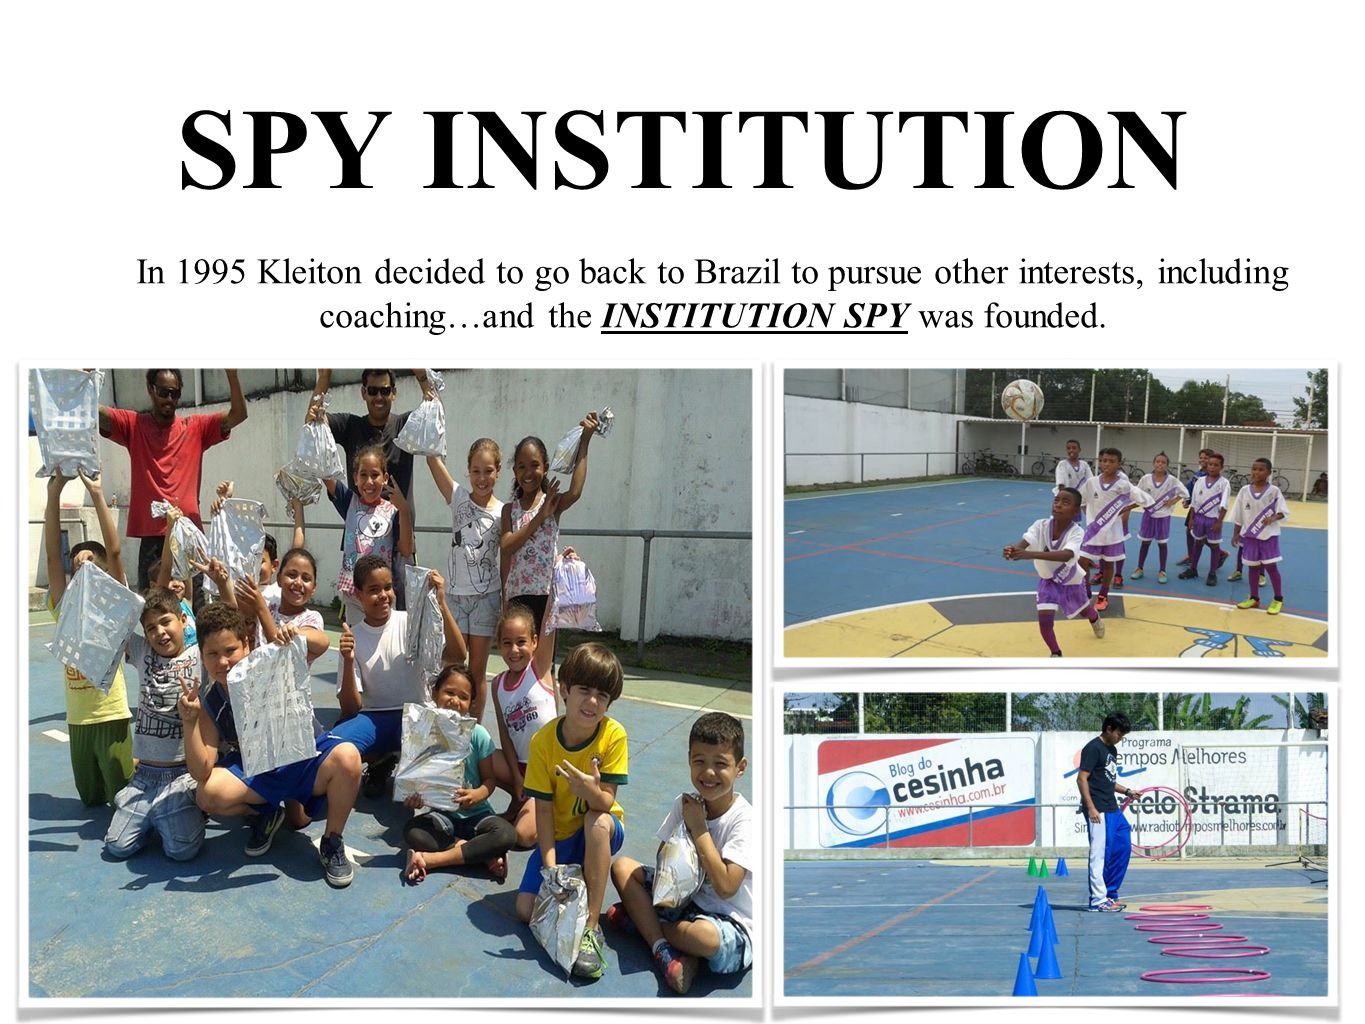 SPY INSTITUTION In 1995 Kleiton decided to go back to Brazil to pursue other interests, including coaching…and the INSTITUTION SPY was founded.